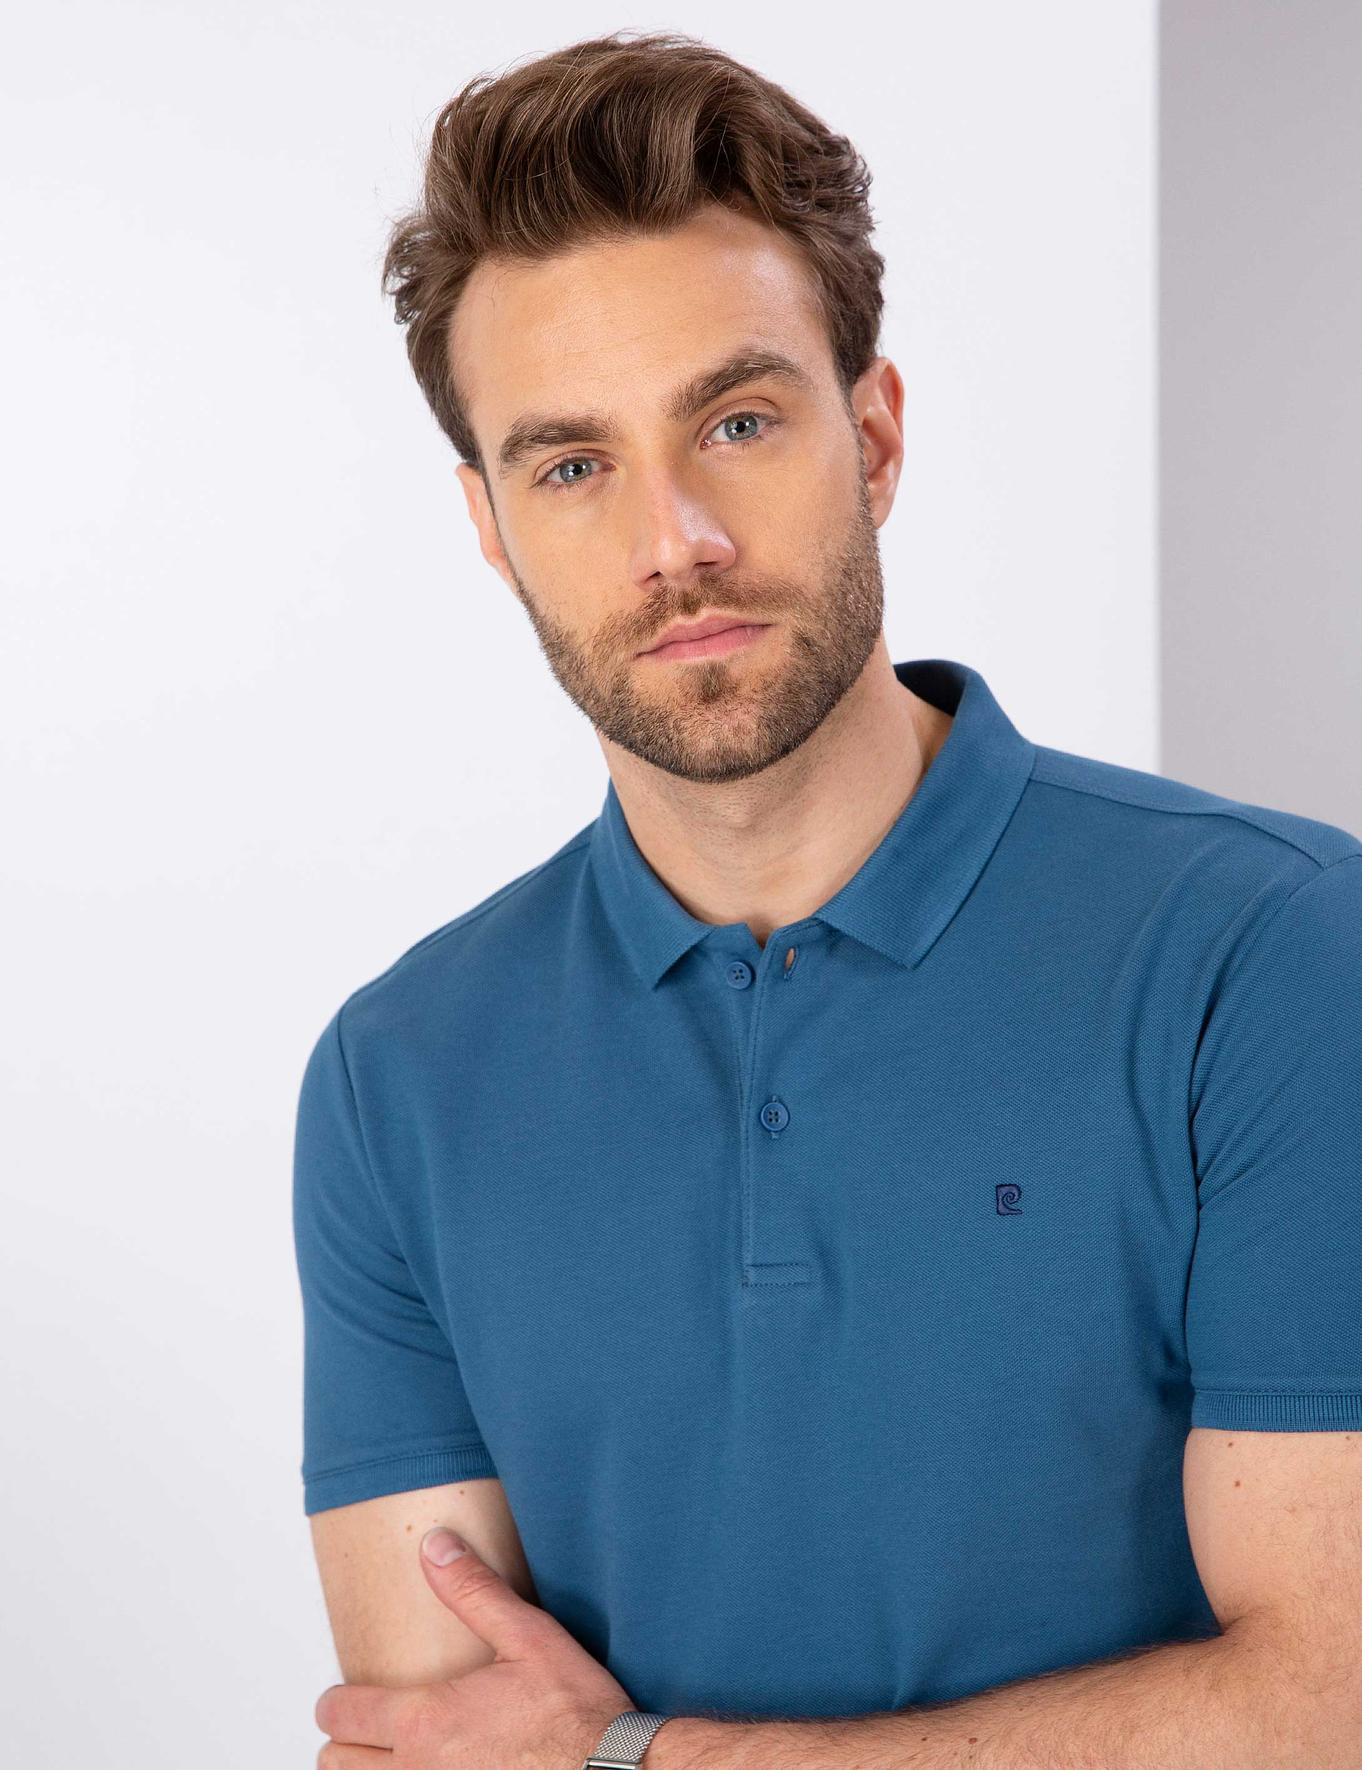 Mavi Slim Fit Basic Polo Yaka T-Shirt